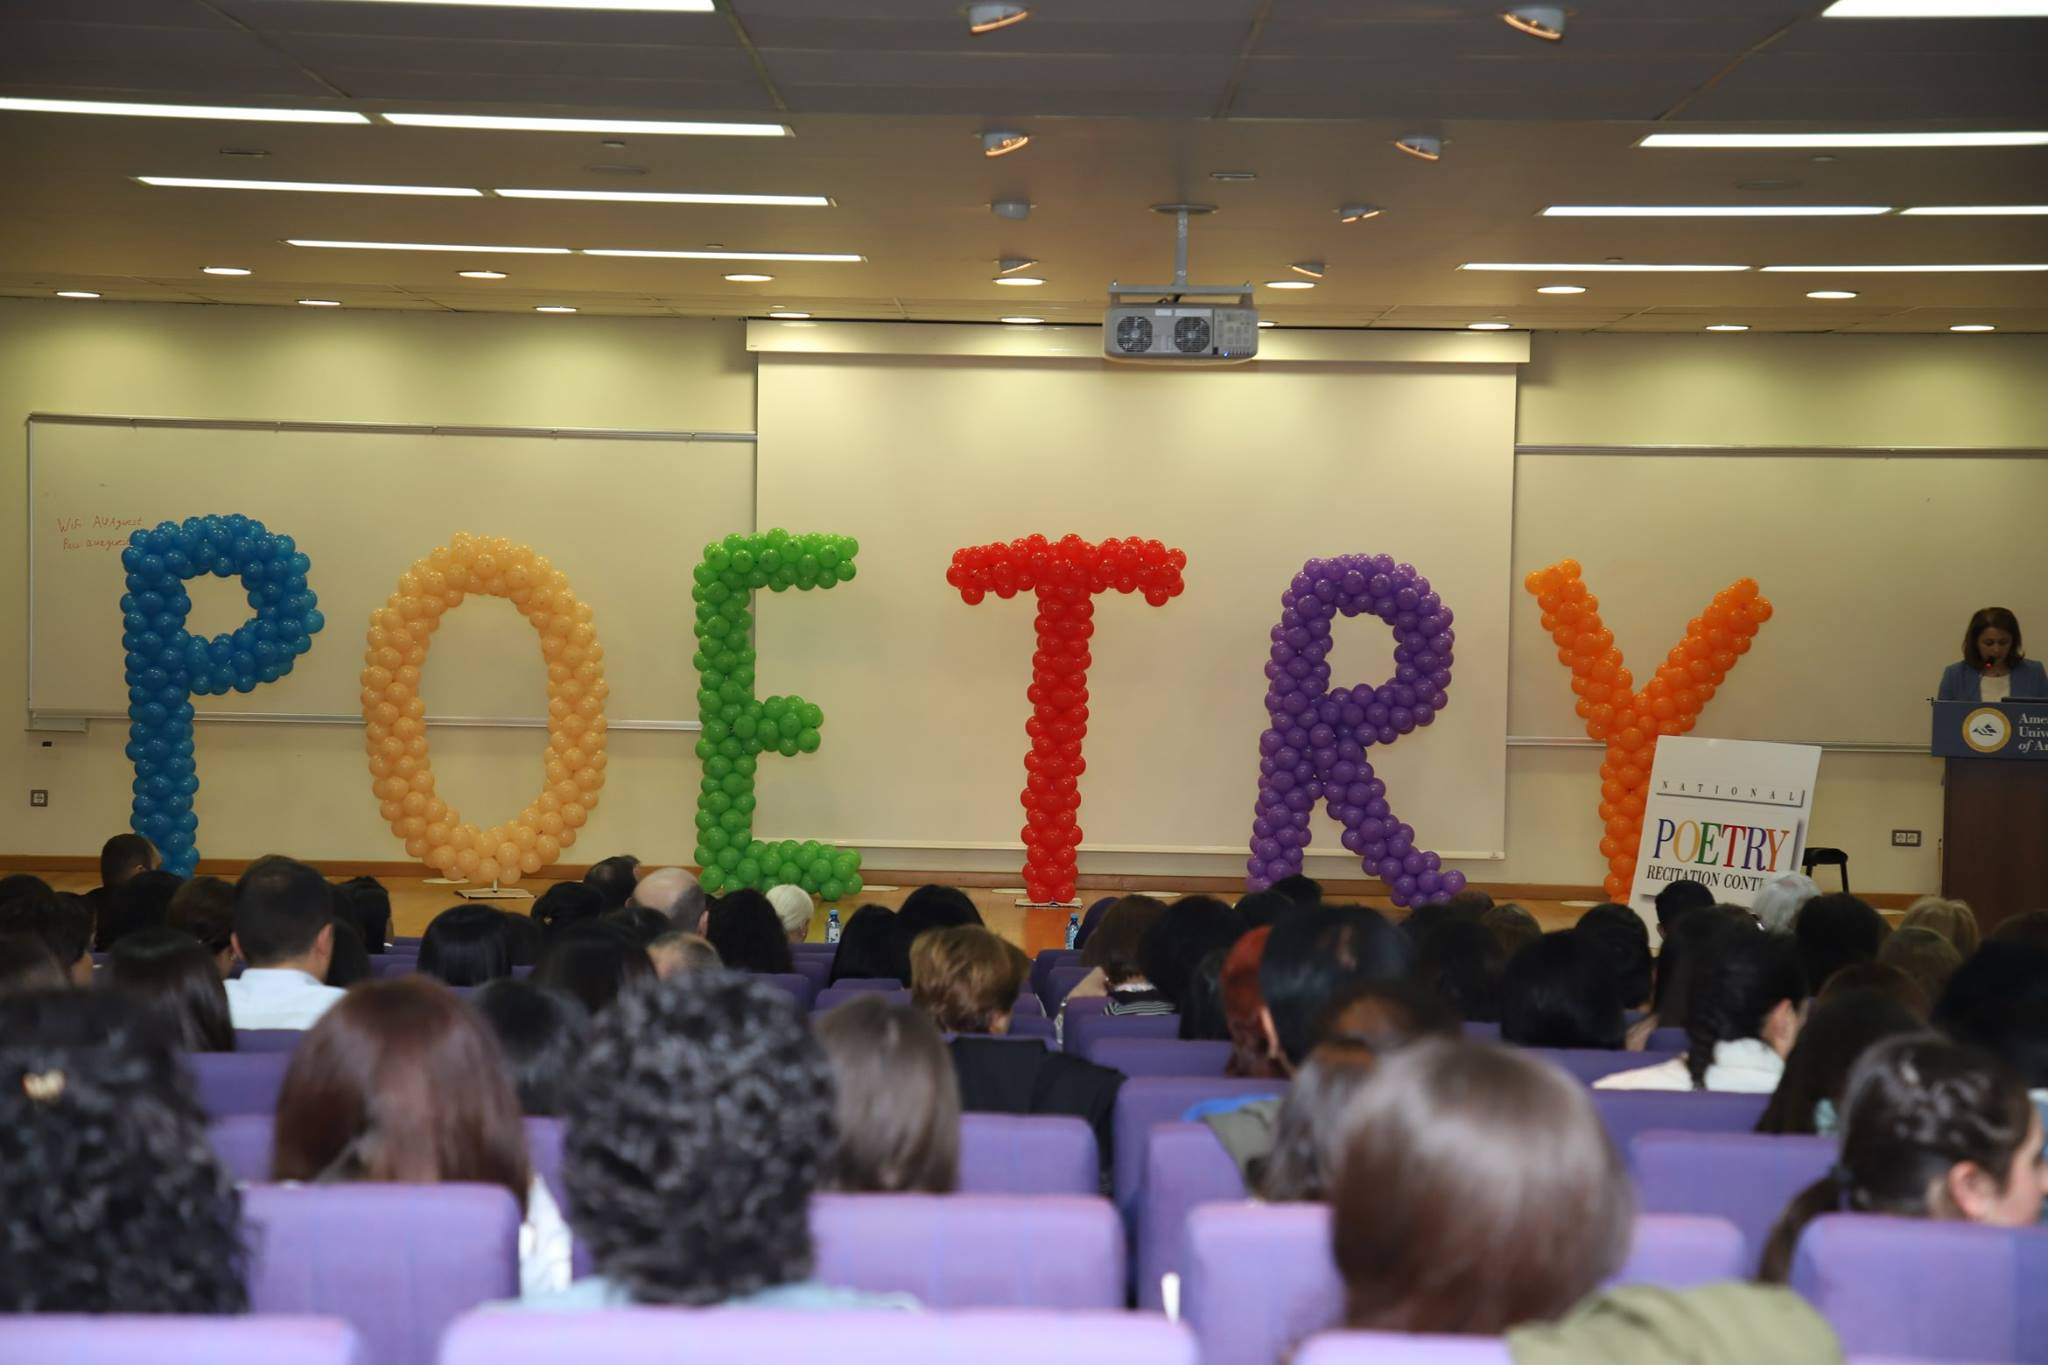 Manoogian Hall at AUA hosts events like the National Poetry Recitation Contest.